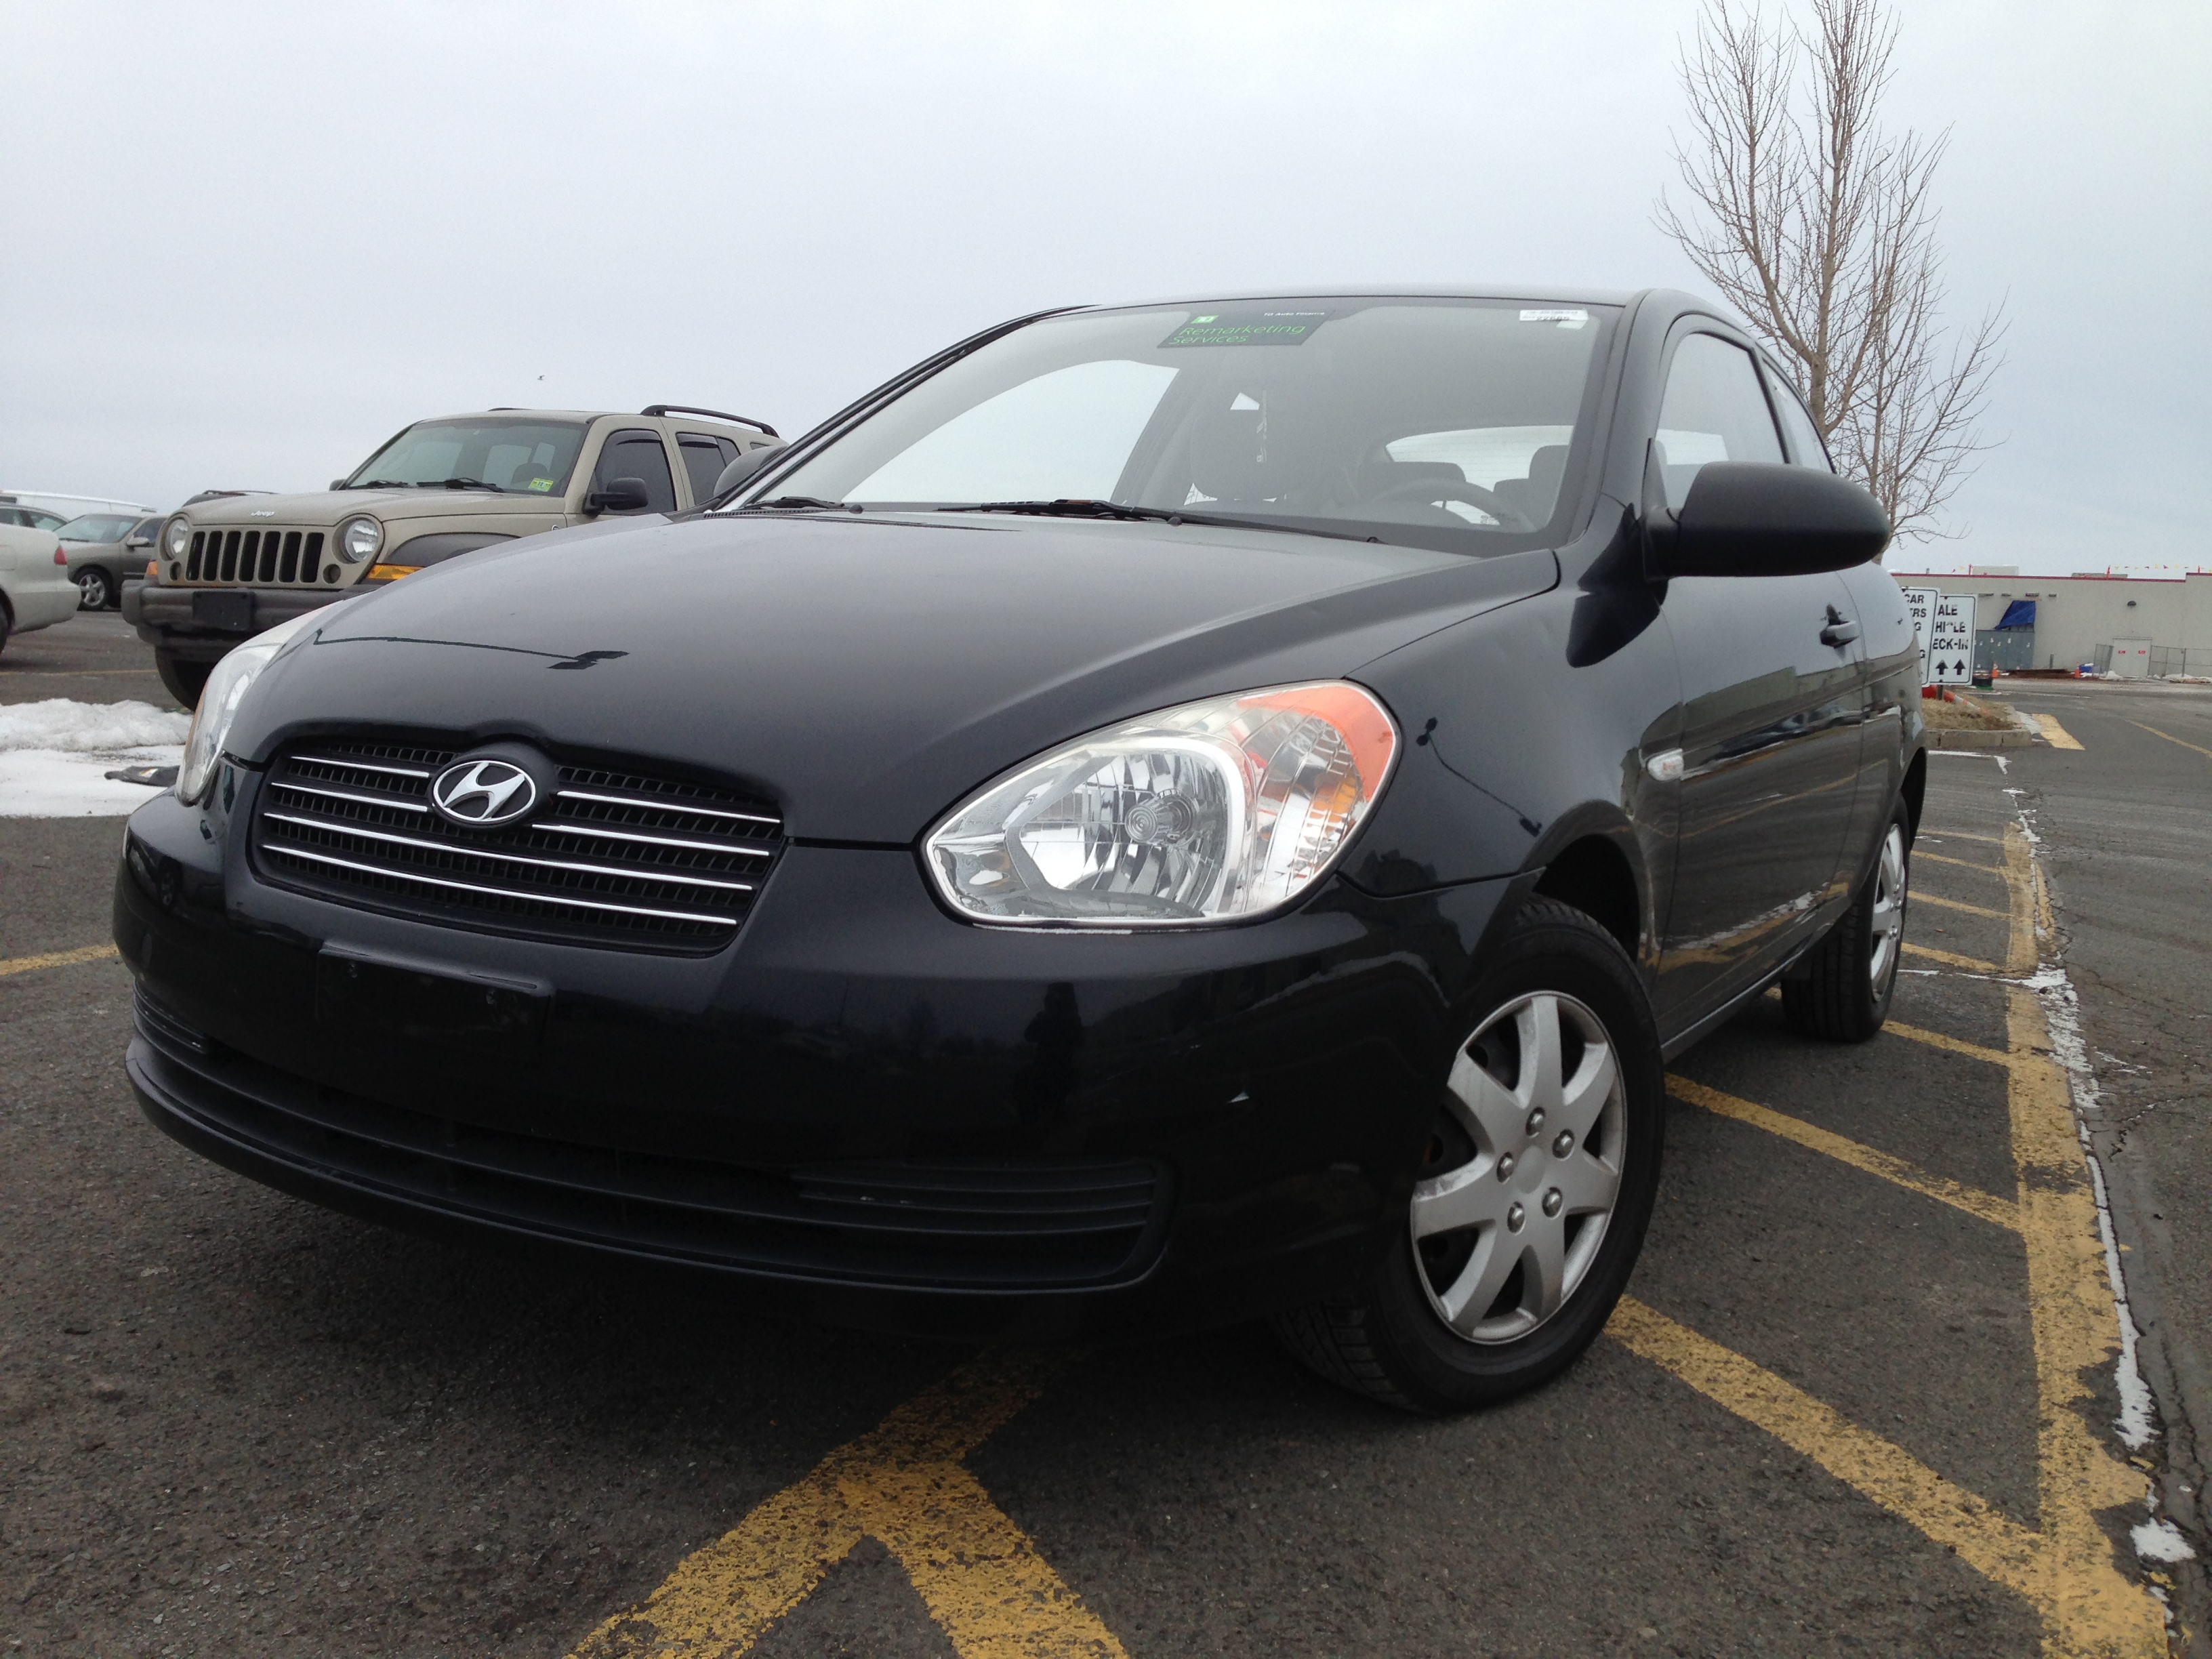 Used Car - 2007 Hyundai Accent for Sale in Staten Island, NY